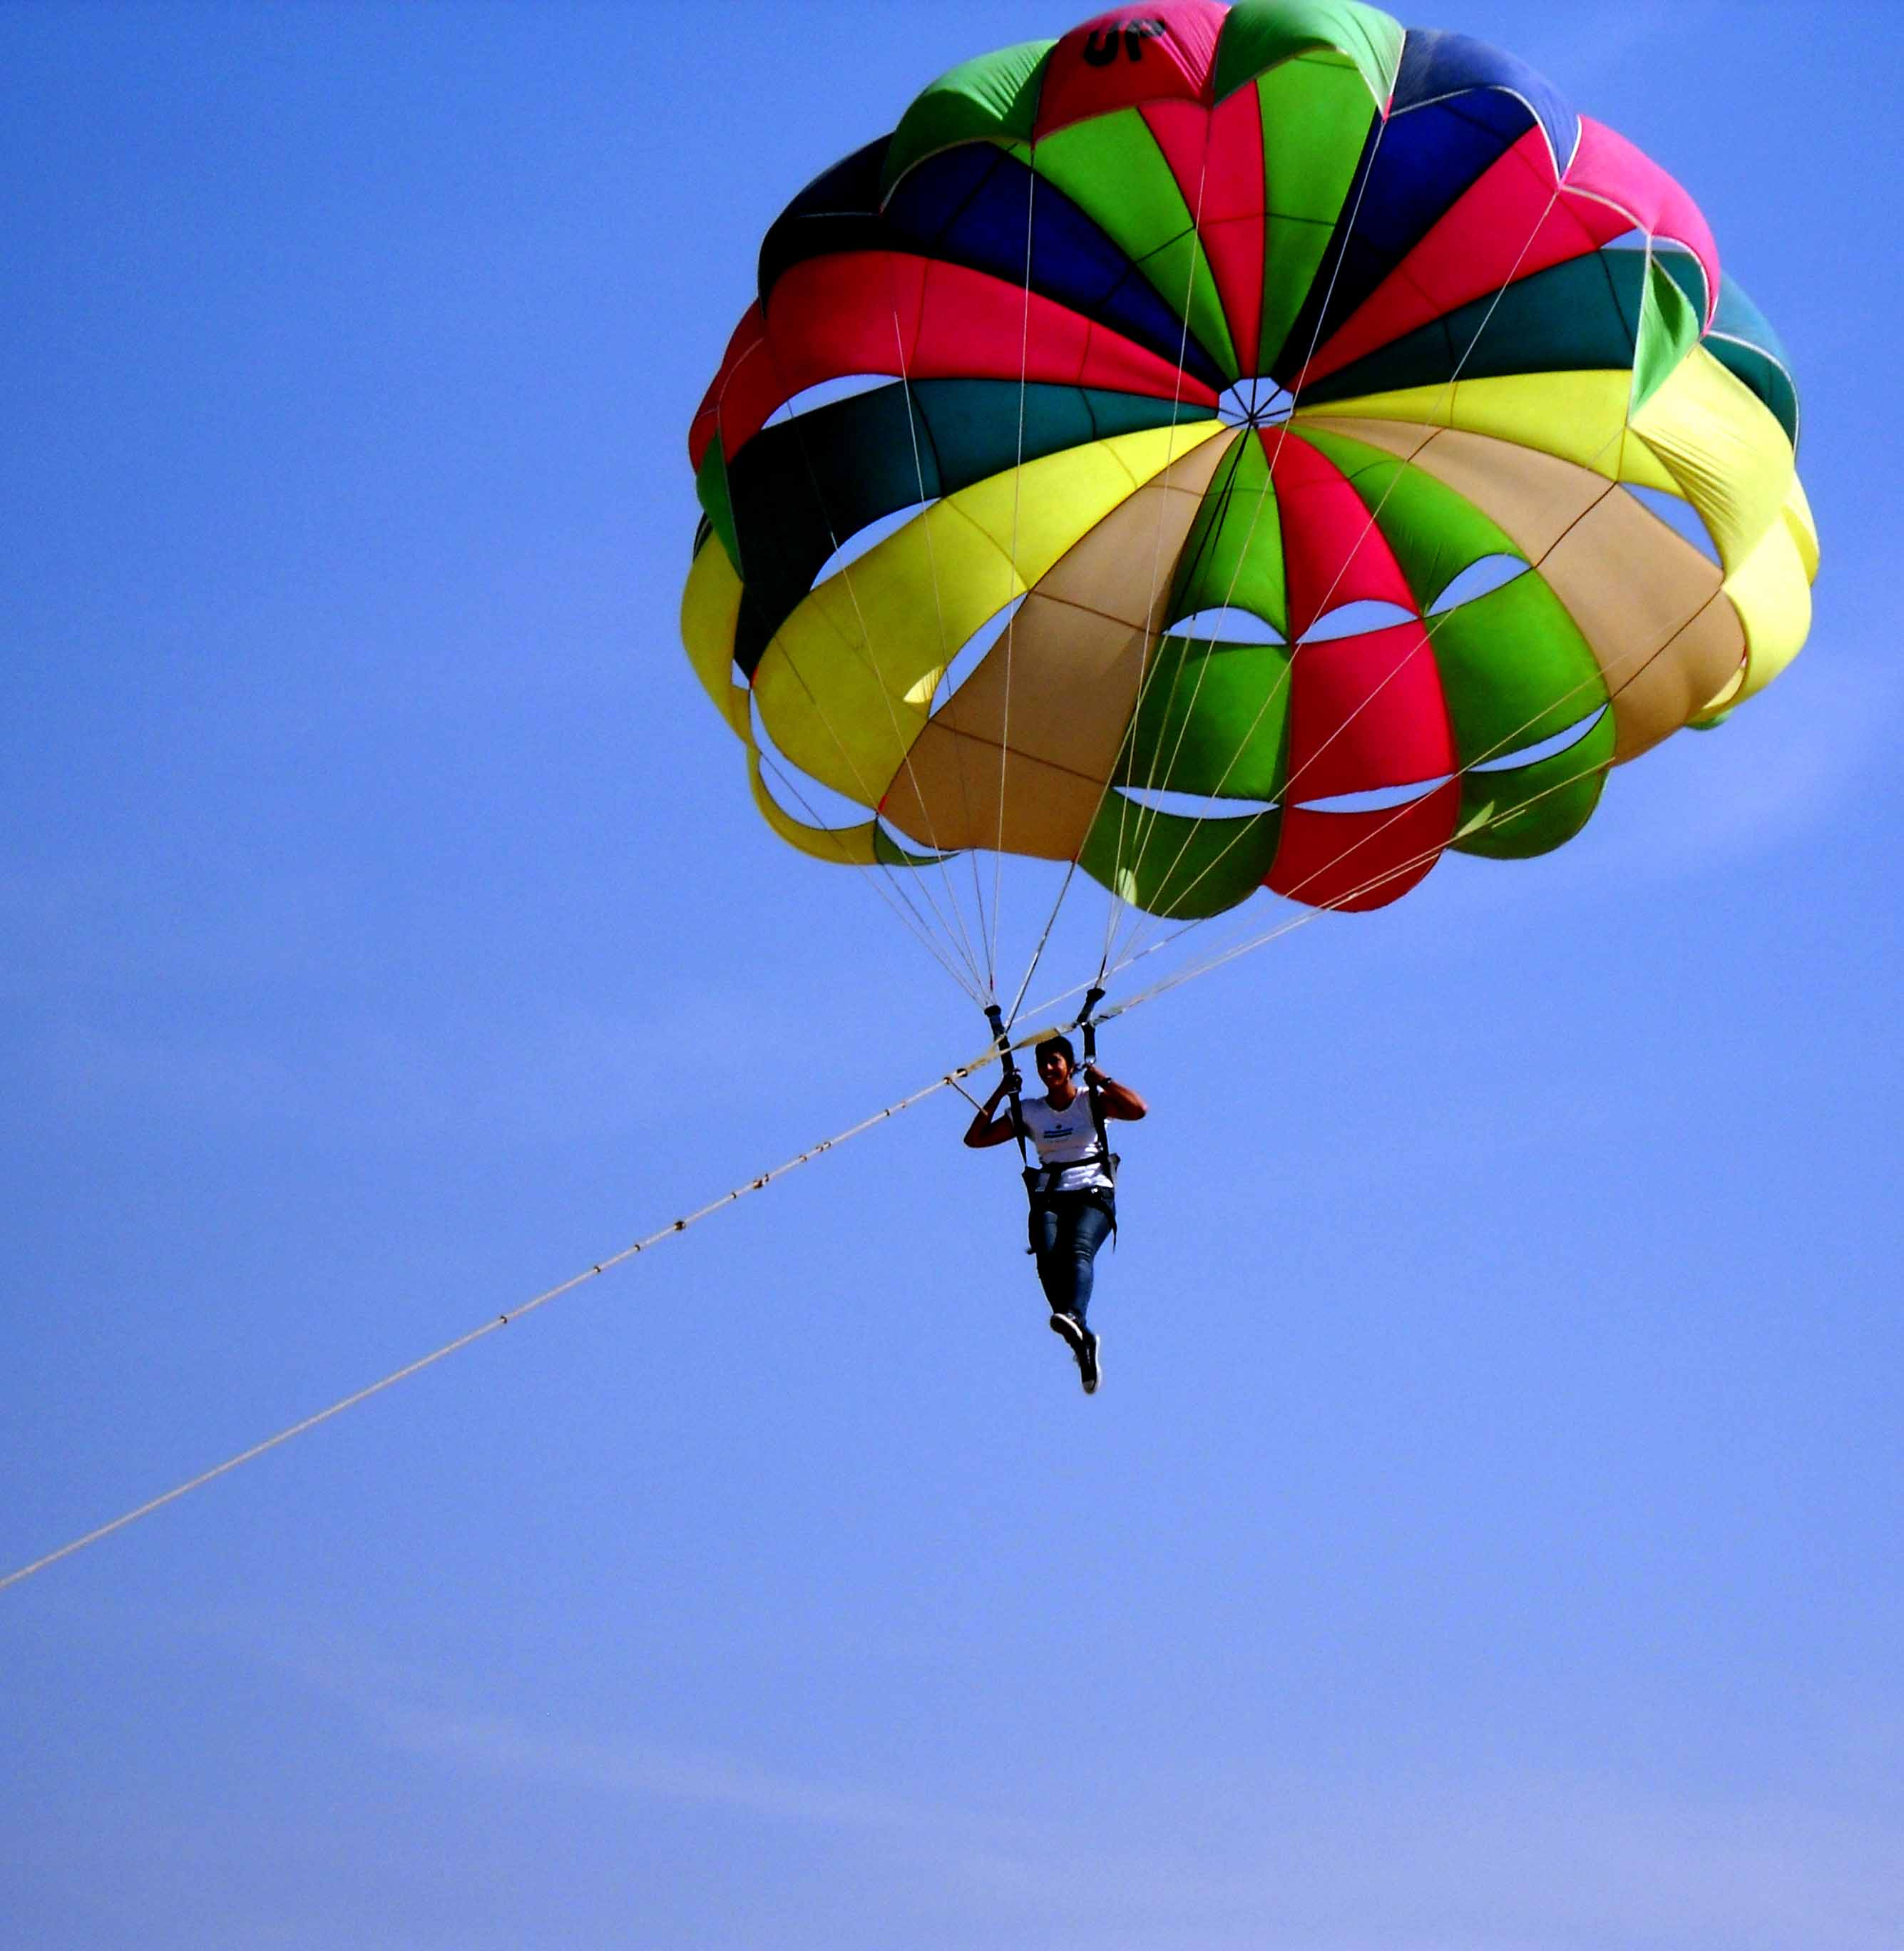 Rajasthan Chapter of the National Adventure Foundation-Exciting parasailing flight of youth